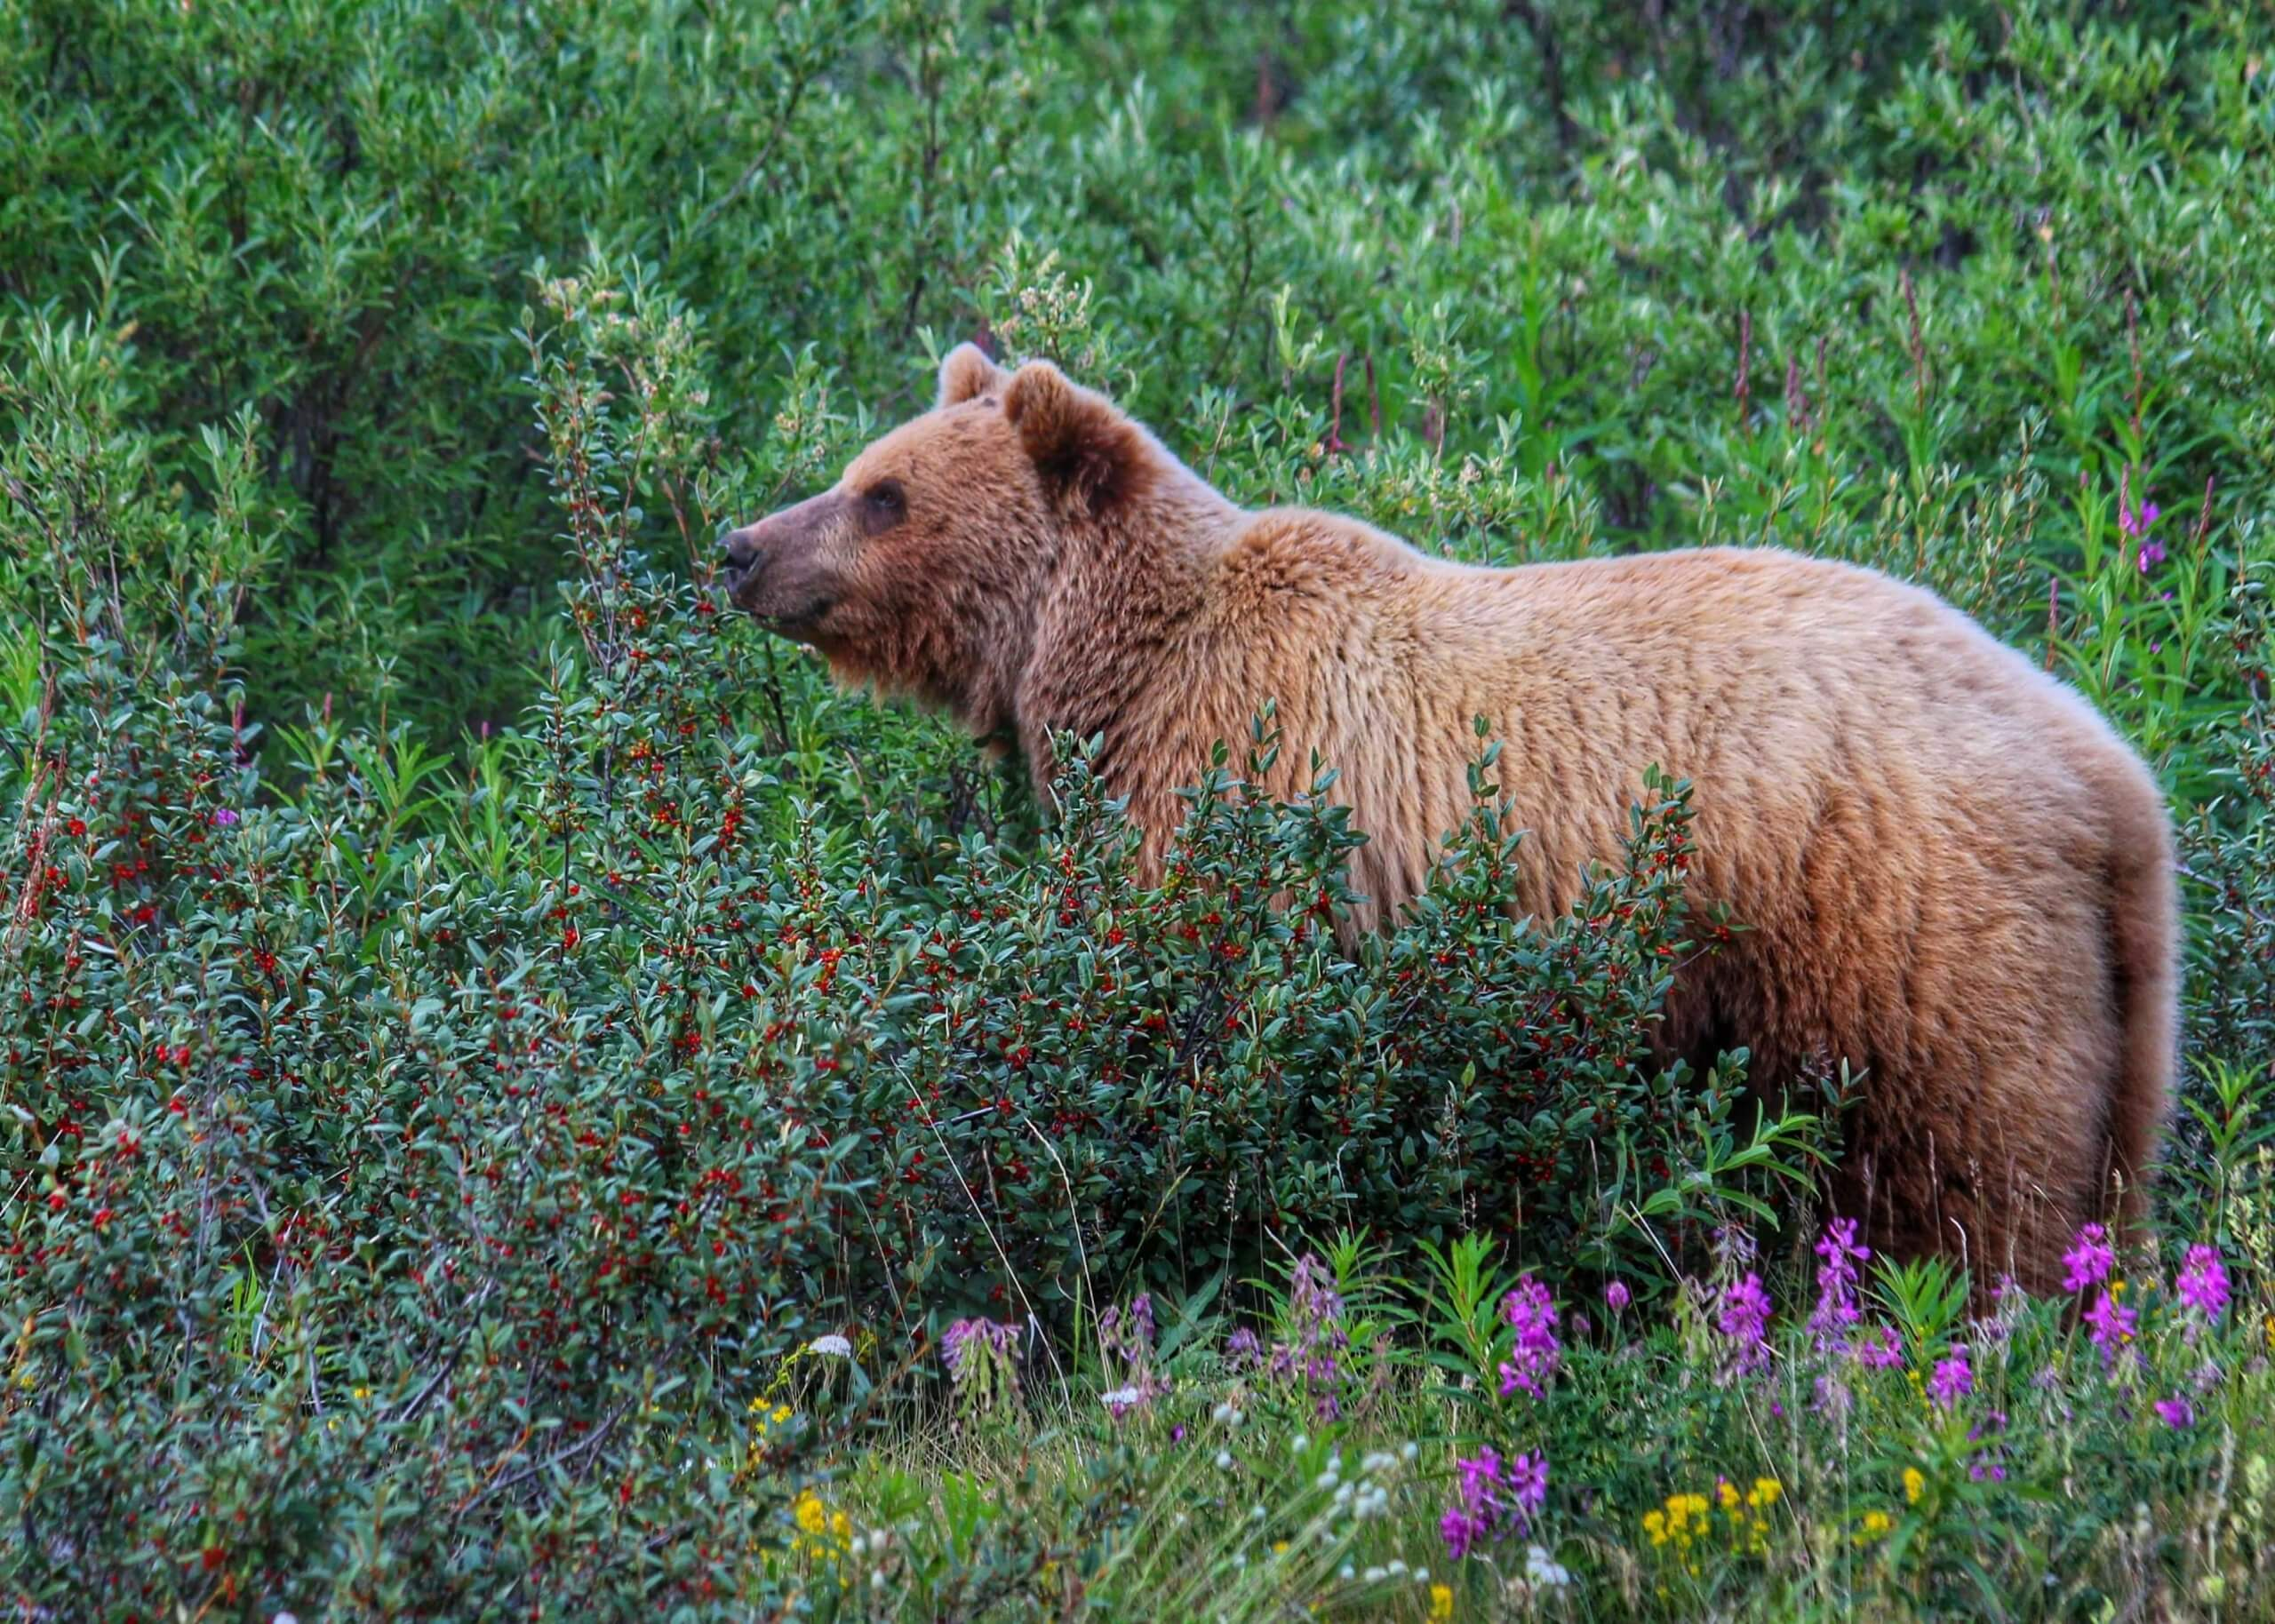 Brown and blonde grizzly bear stands in a red soap berries patch